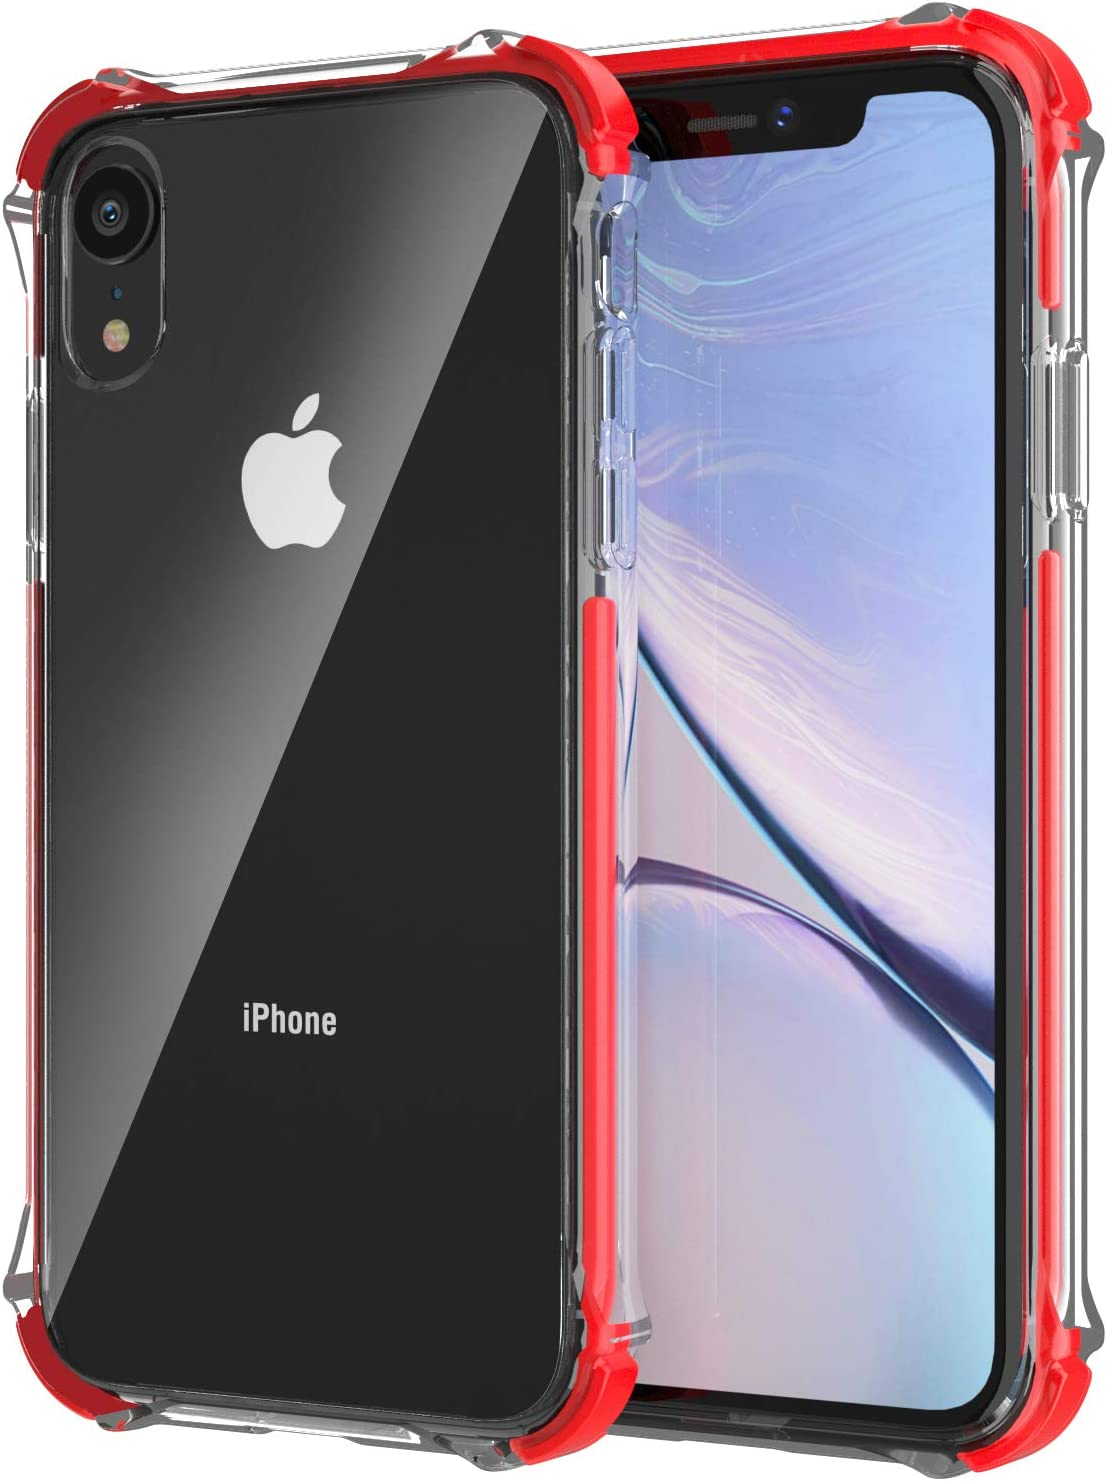 EFFENX Clear iPhone XR Case,Thin Slim Shockproof Case Protective Cover TPU Bumper Hard PC Back Cover for iPhone XR 6.1'' (Crystal Clear) (Clear red)